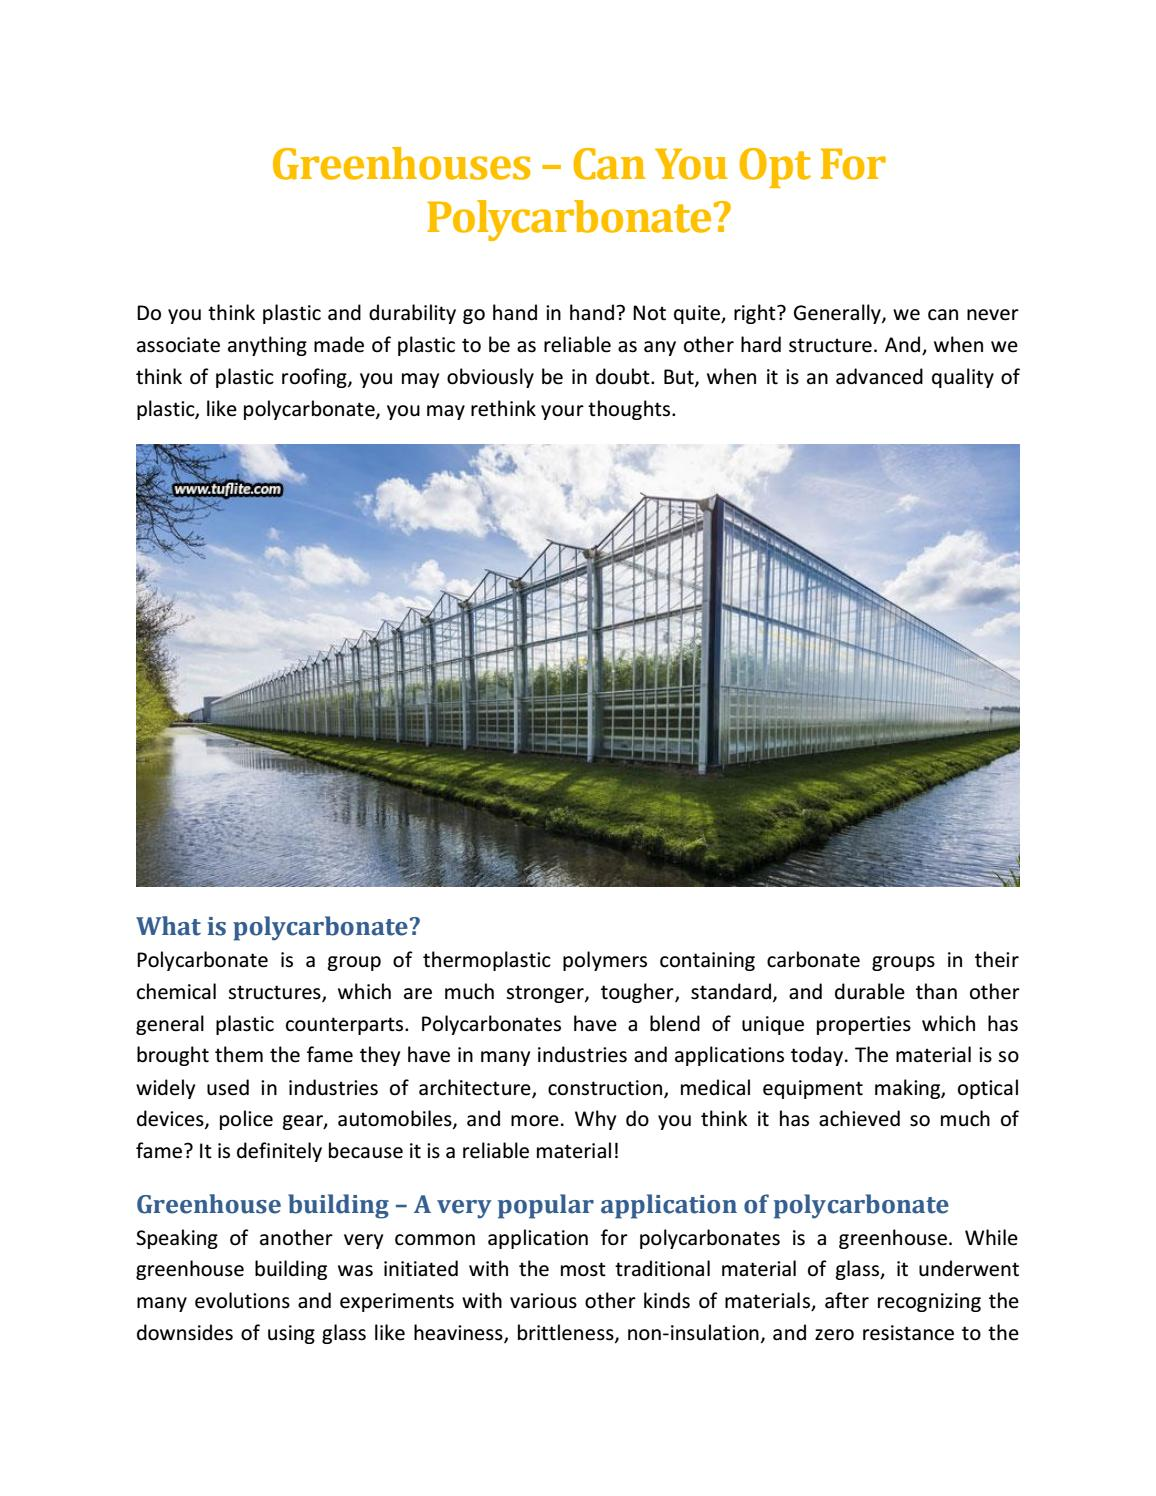 Greenhouses – Can You Opt For Polycarbonate - Tuflite